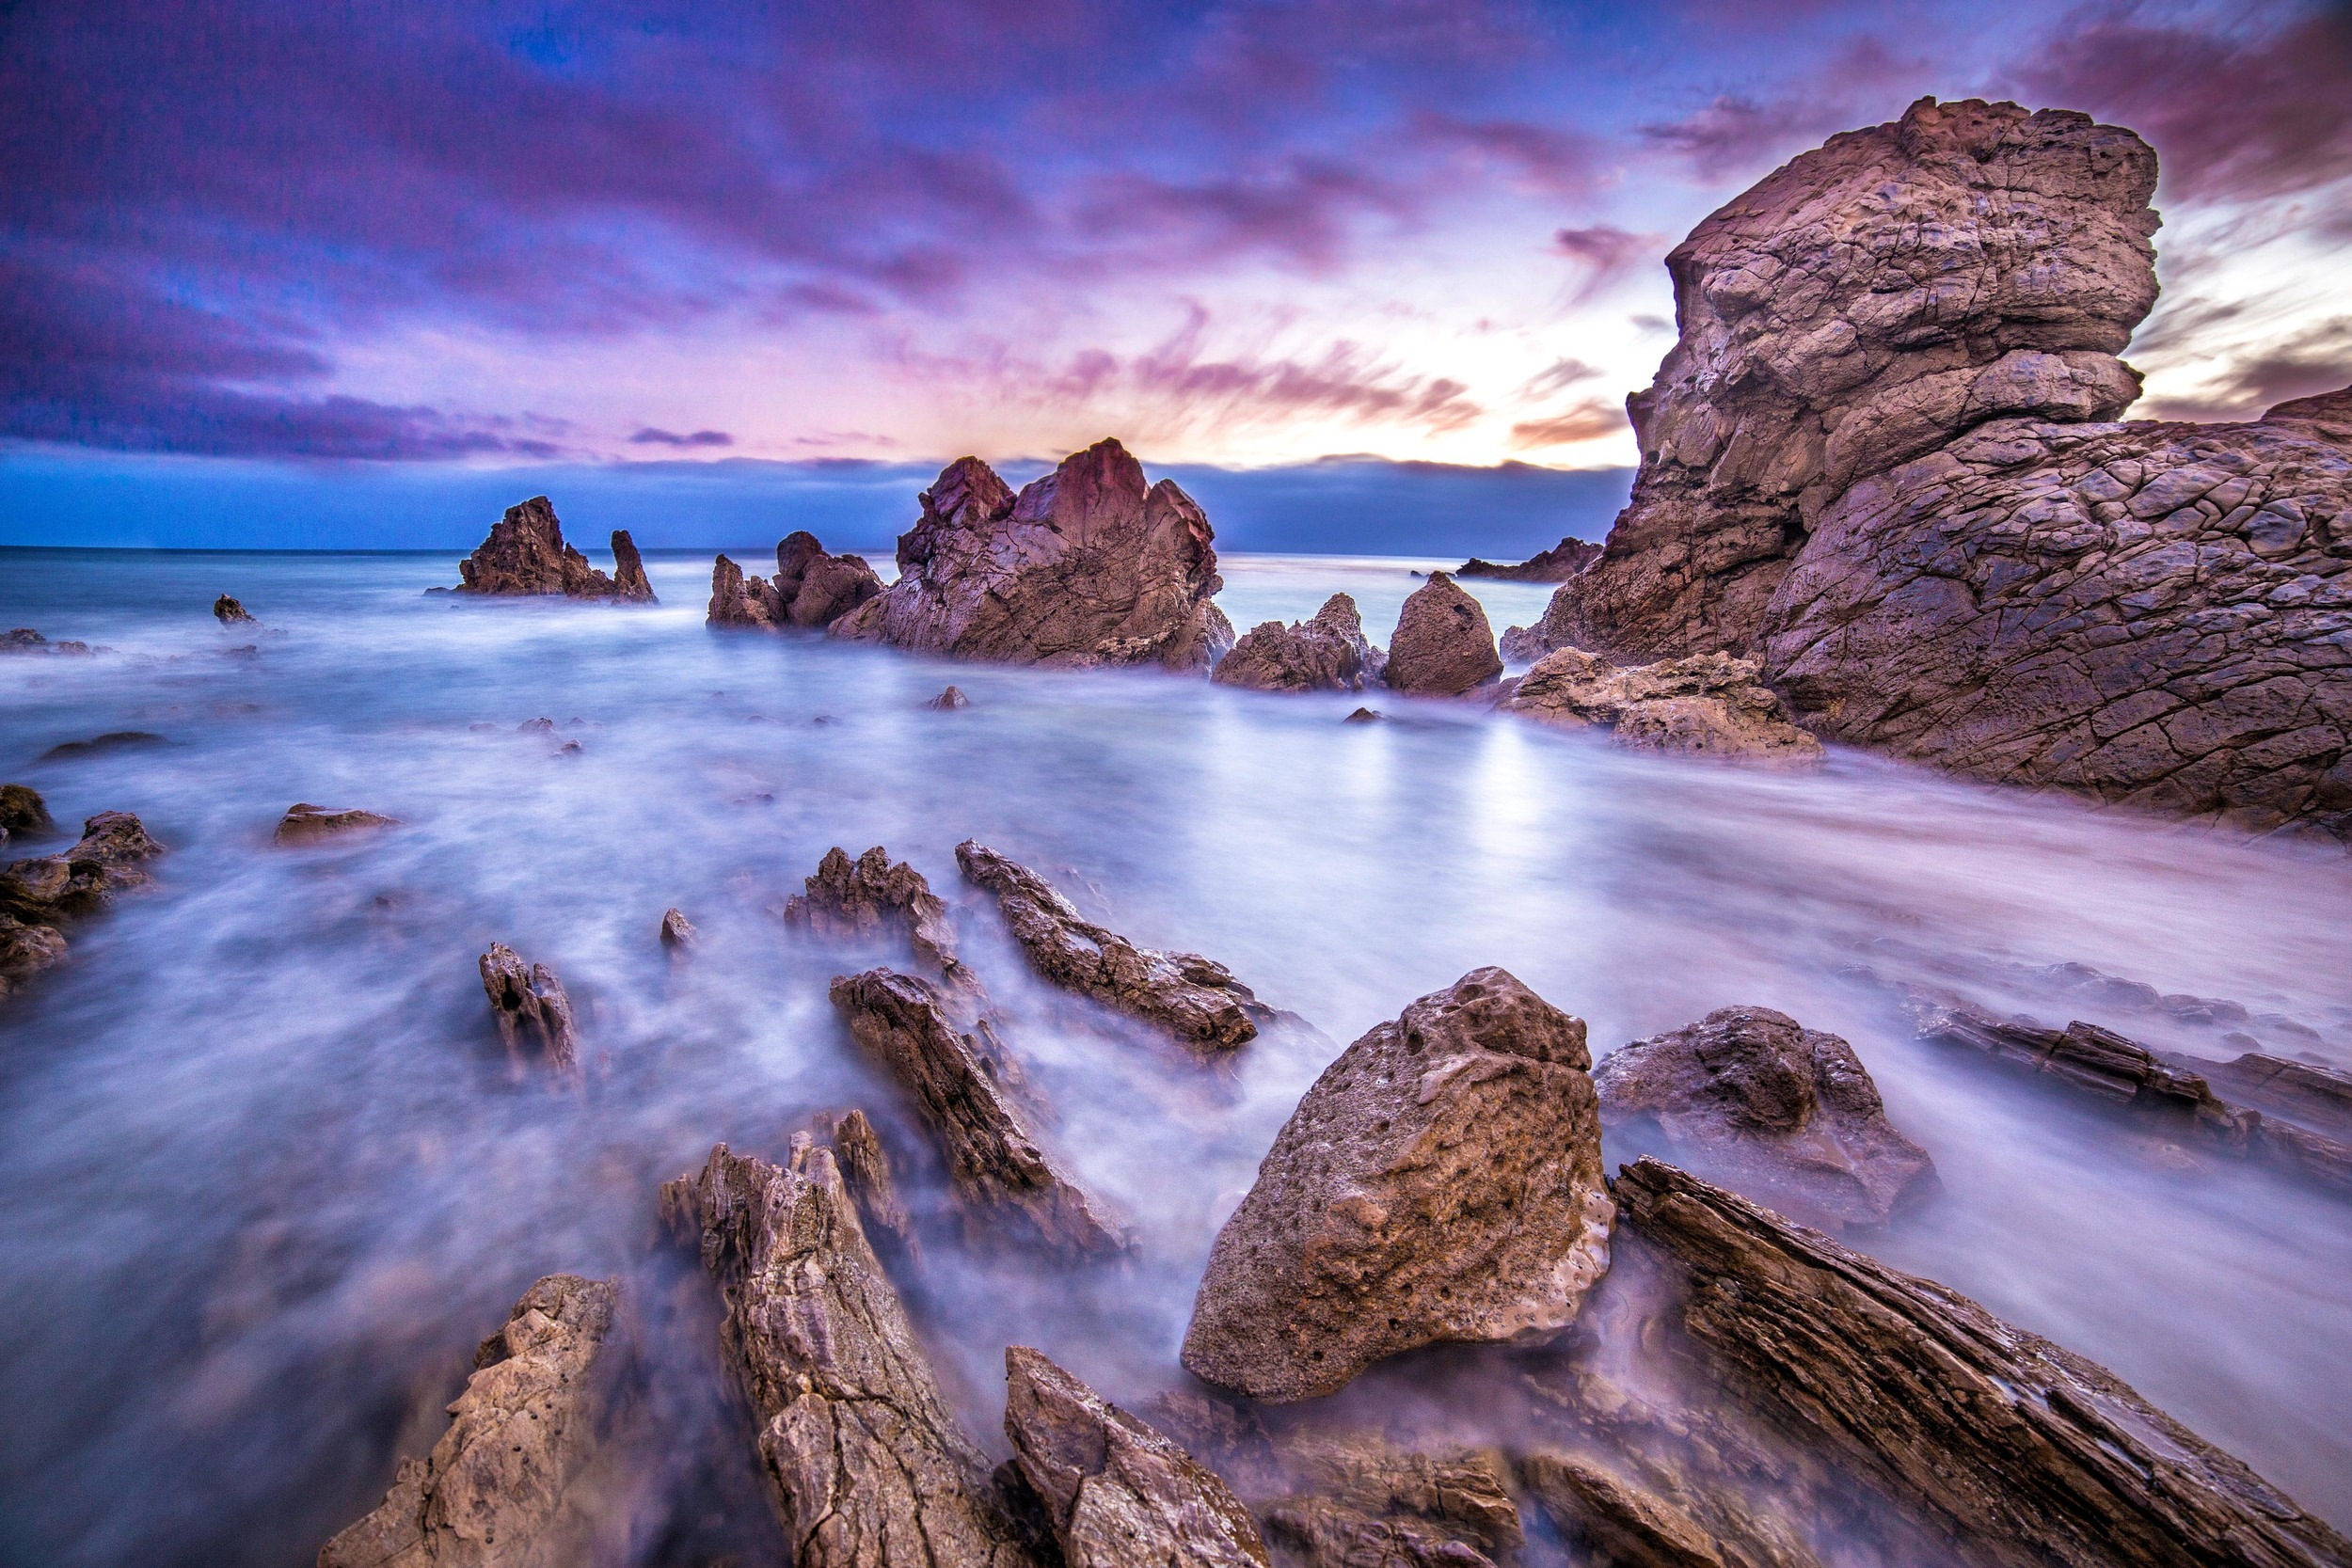 Four wave cycles are captured in this internationally published long exposure blend image from sunset in Corona Del Mar, California.